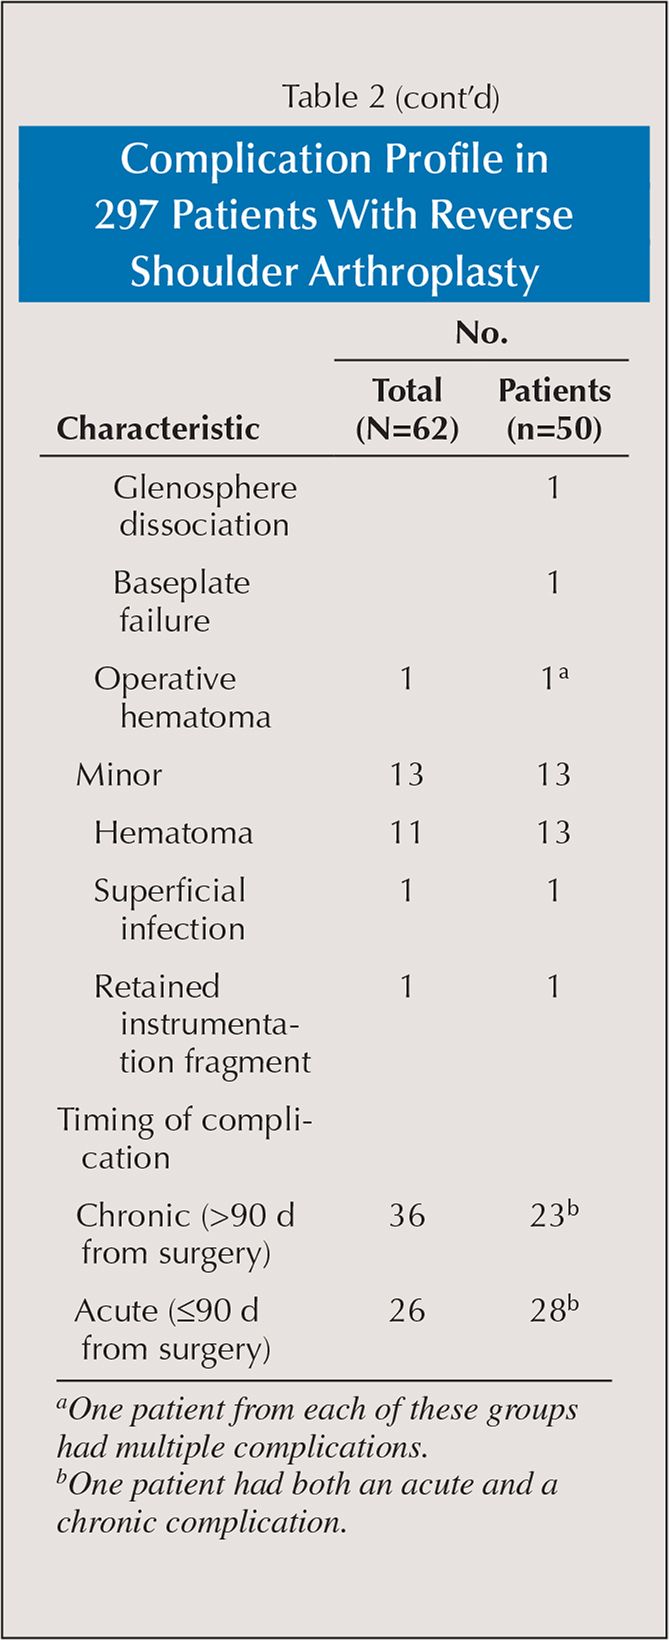 Complication Profile in 297 Patients With Reverse Shoulder Arthroplasty